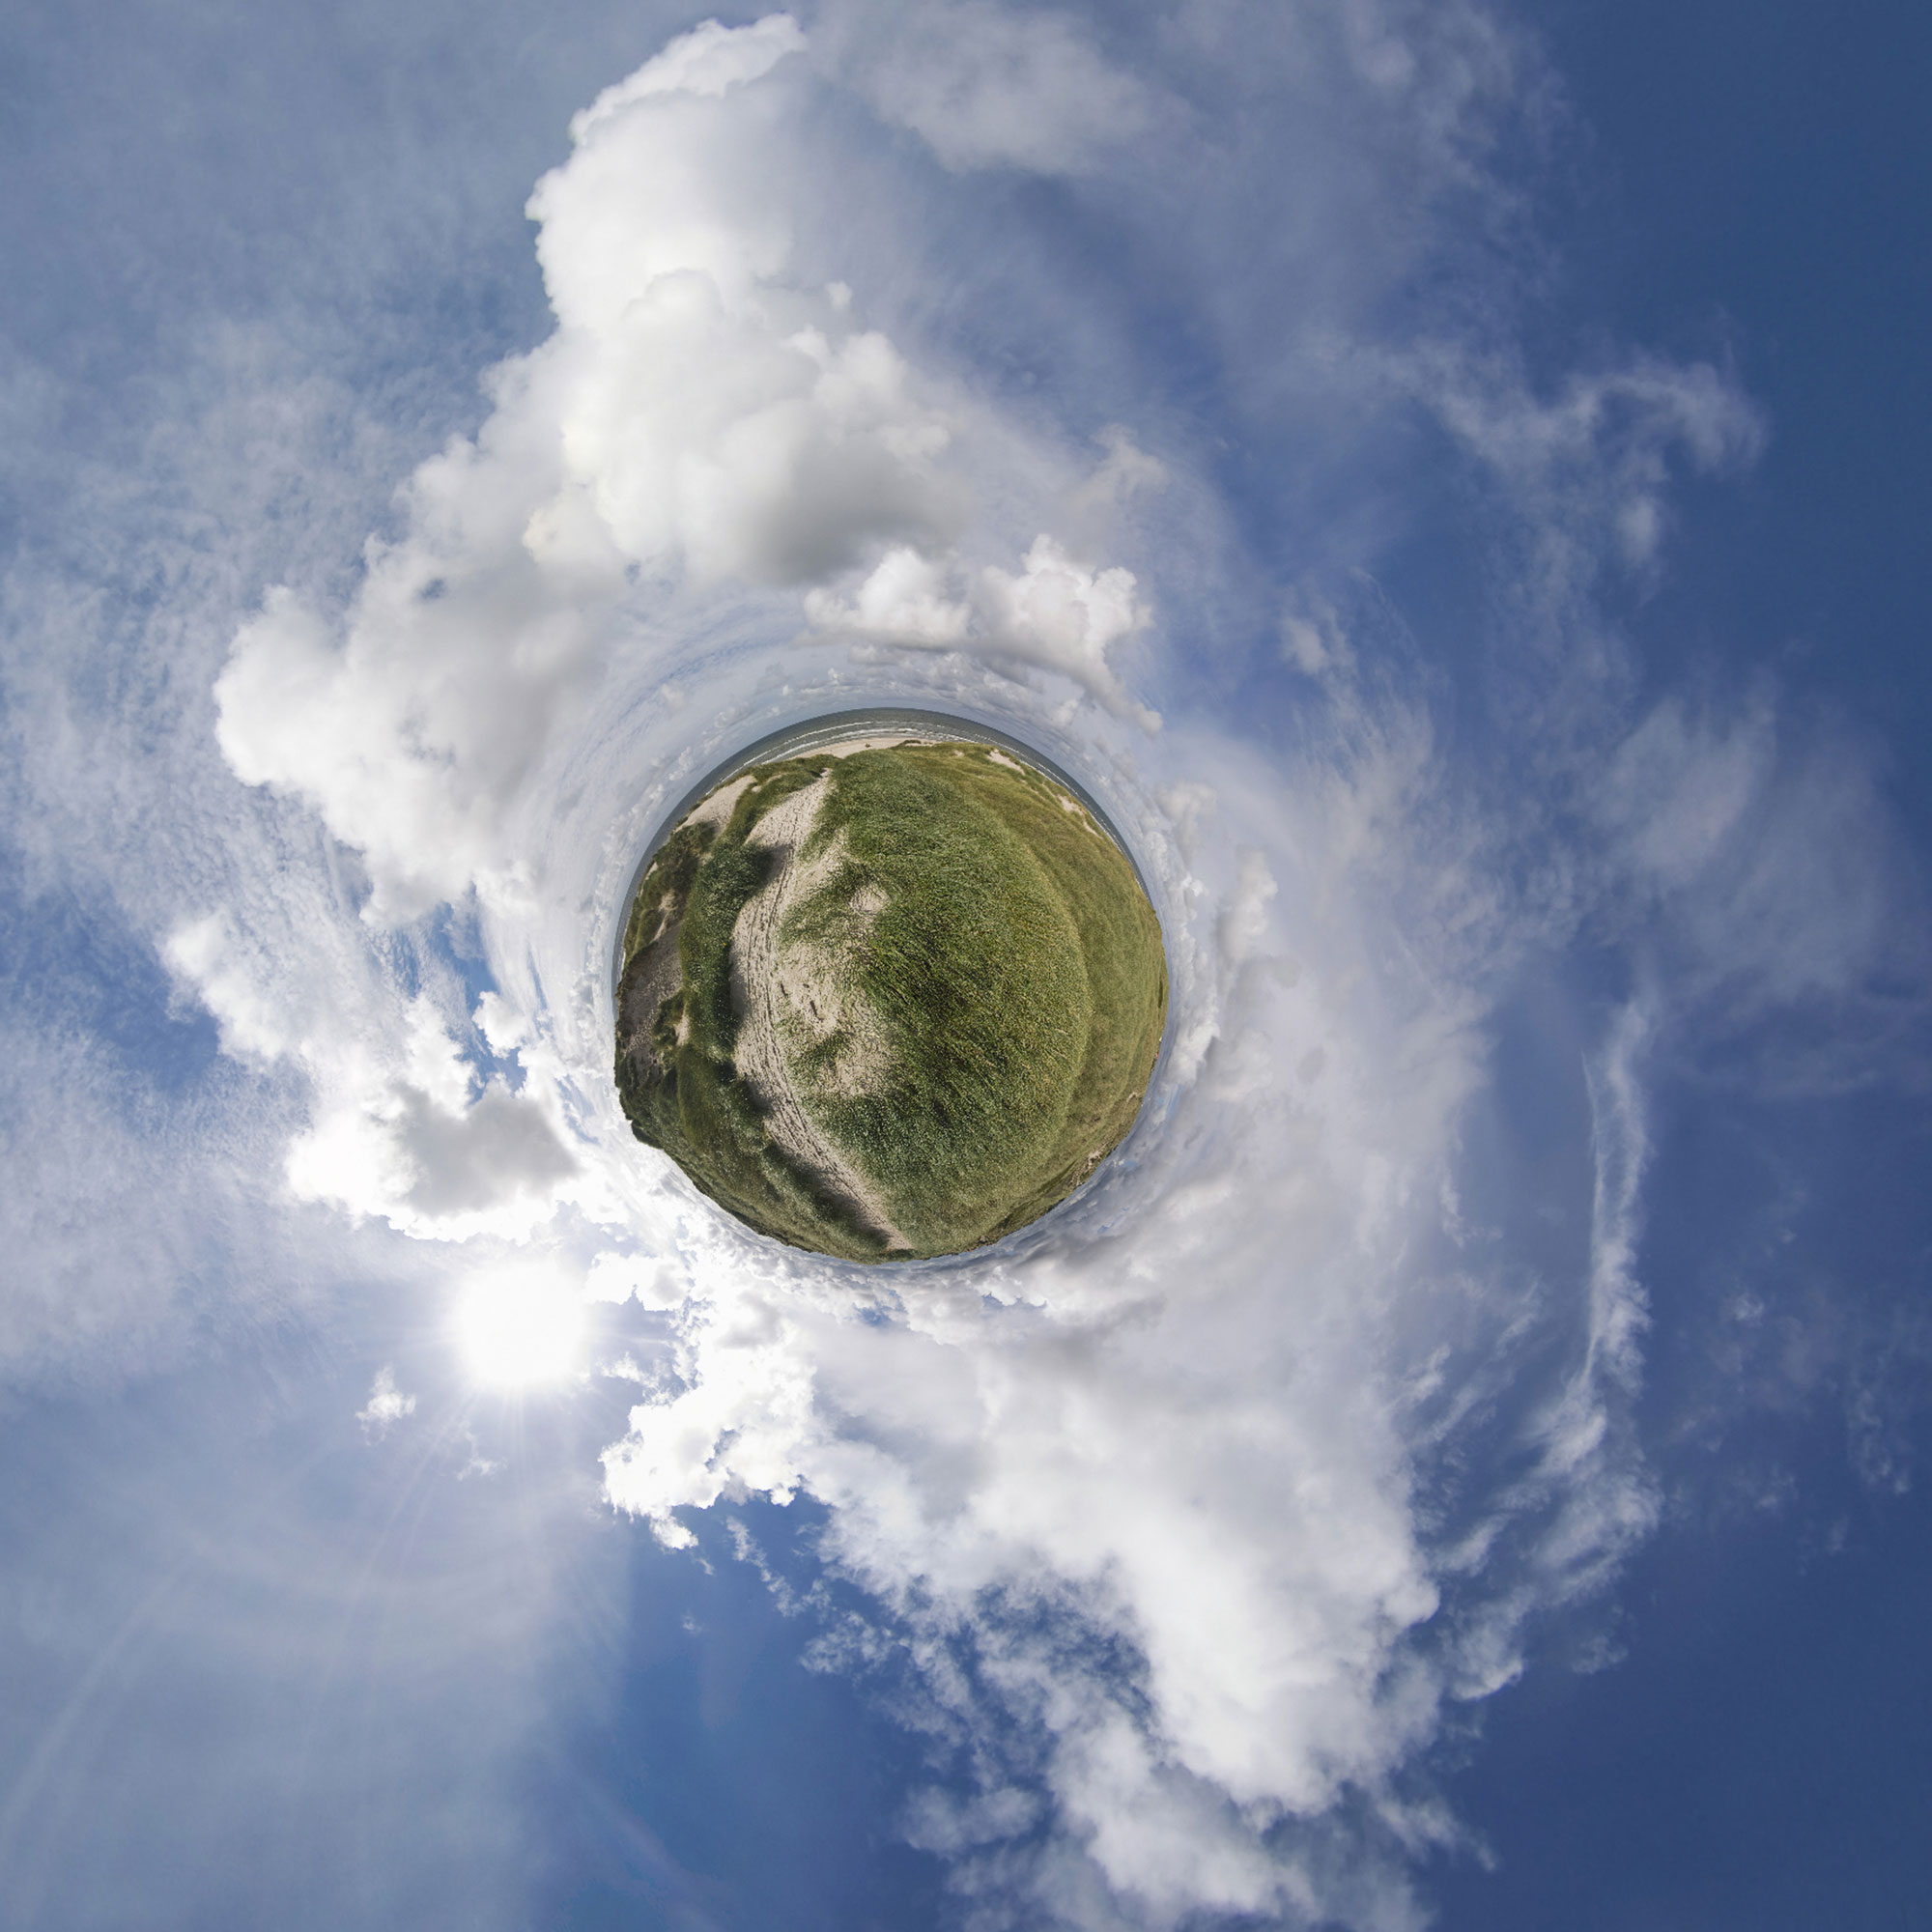 Panorama 054 - Little Planet